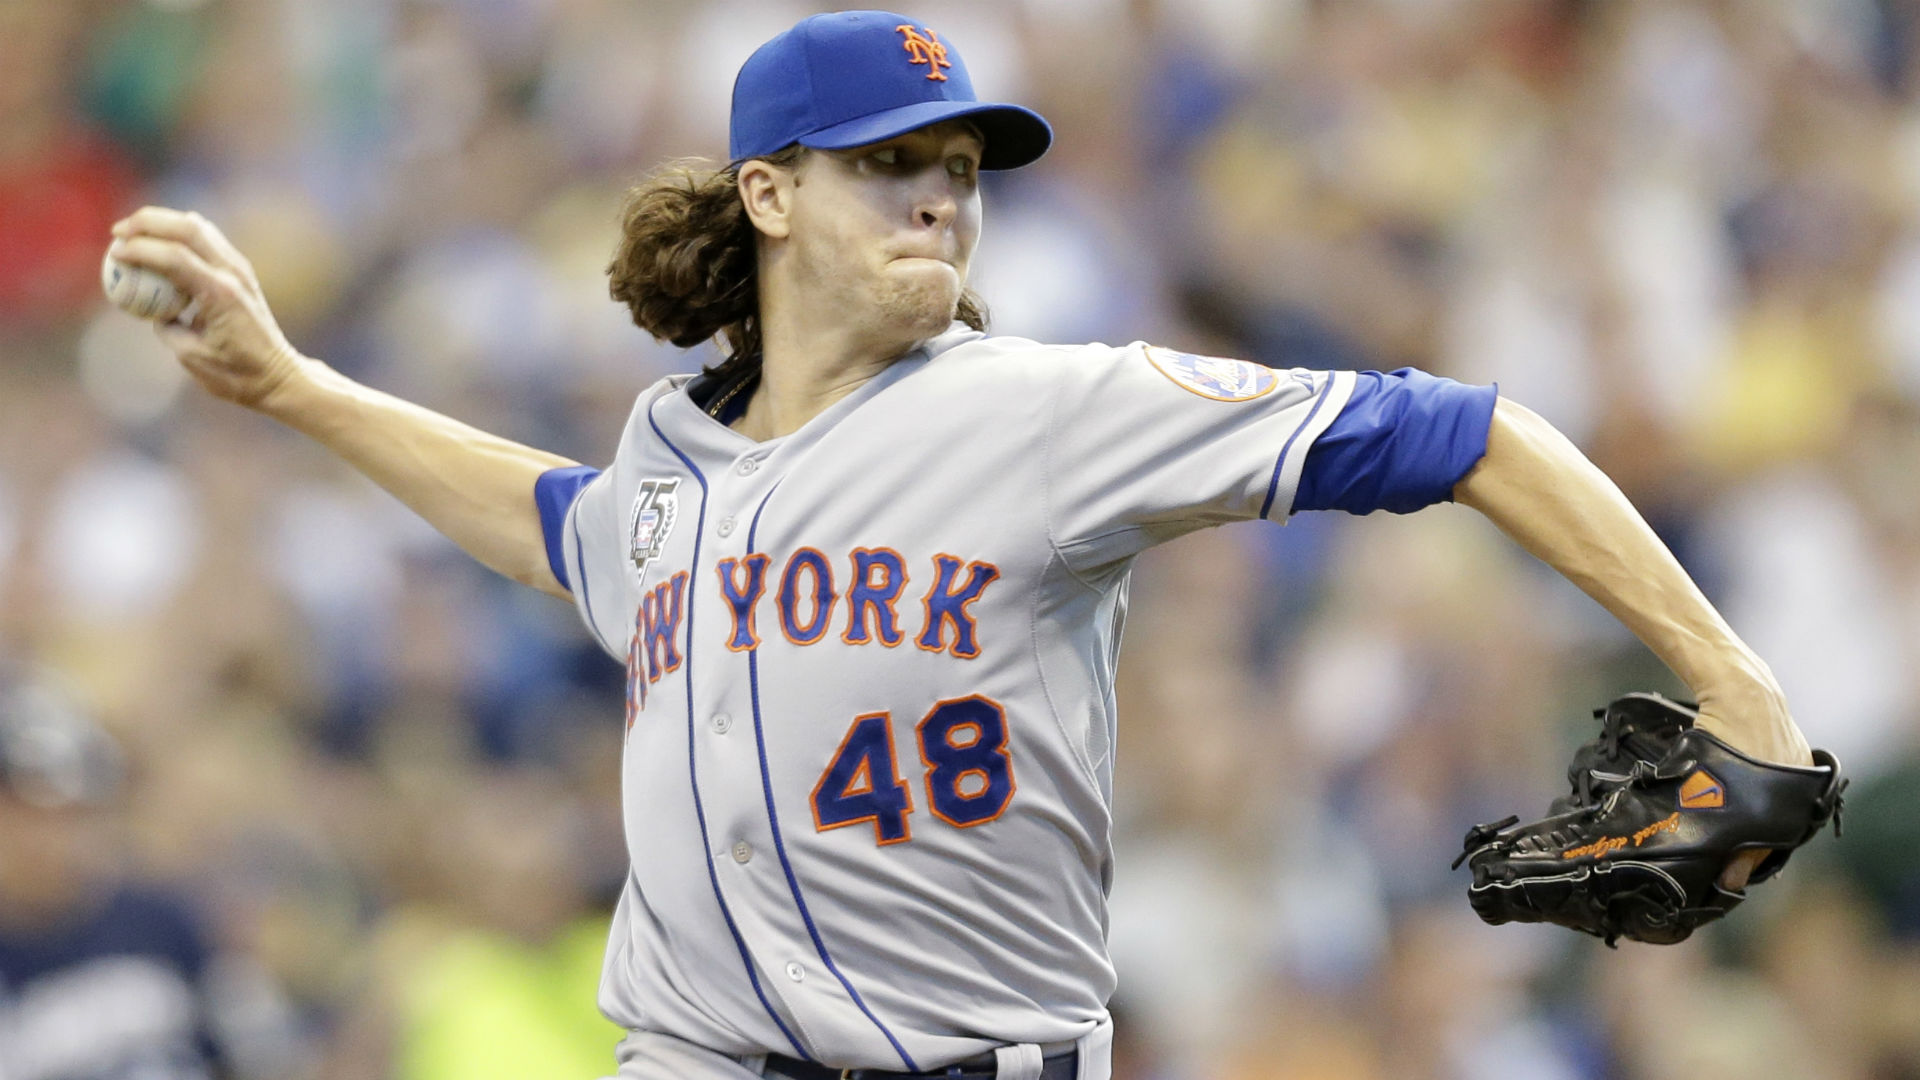 Jacob_deGrom_073014_AP_FTR